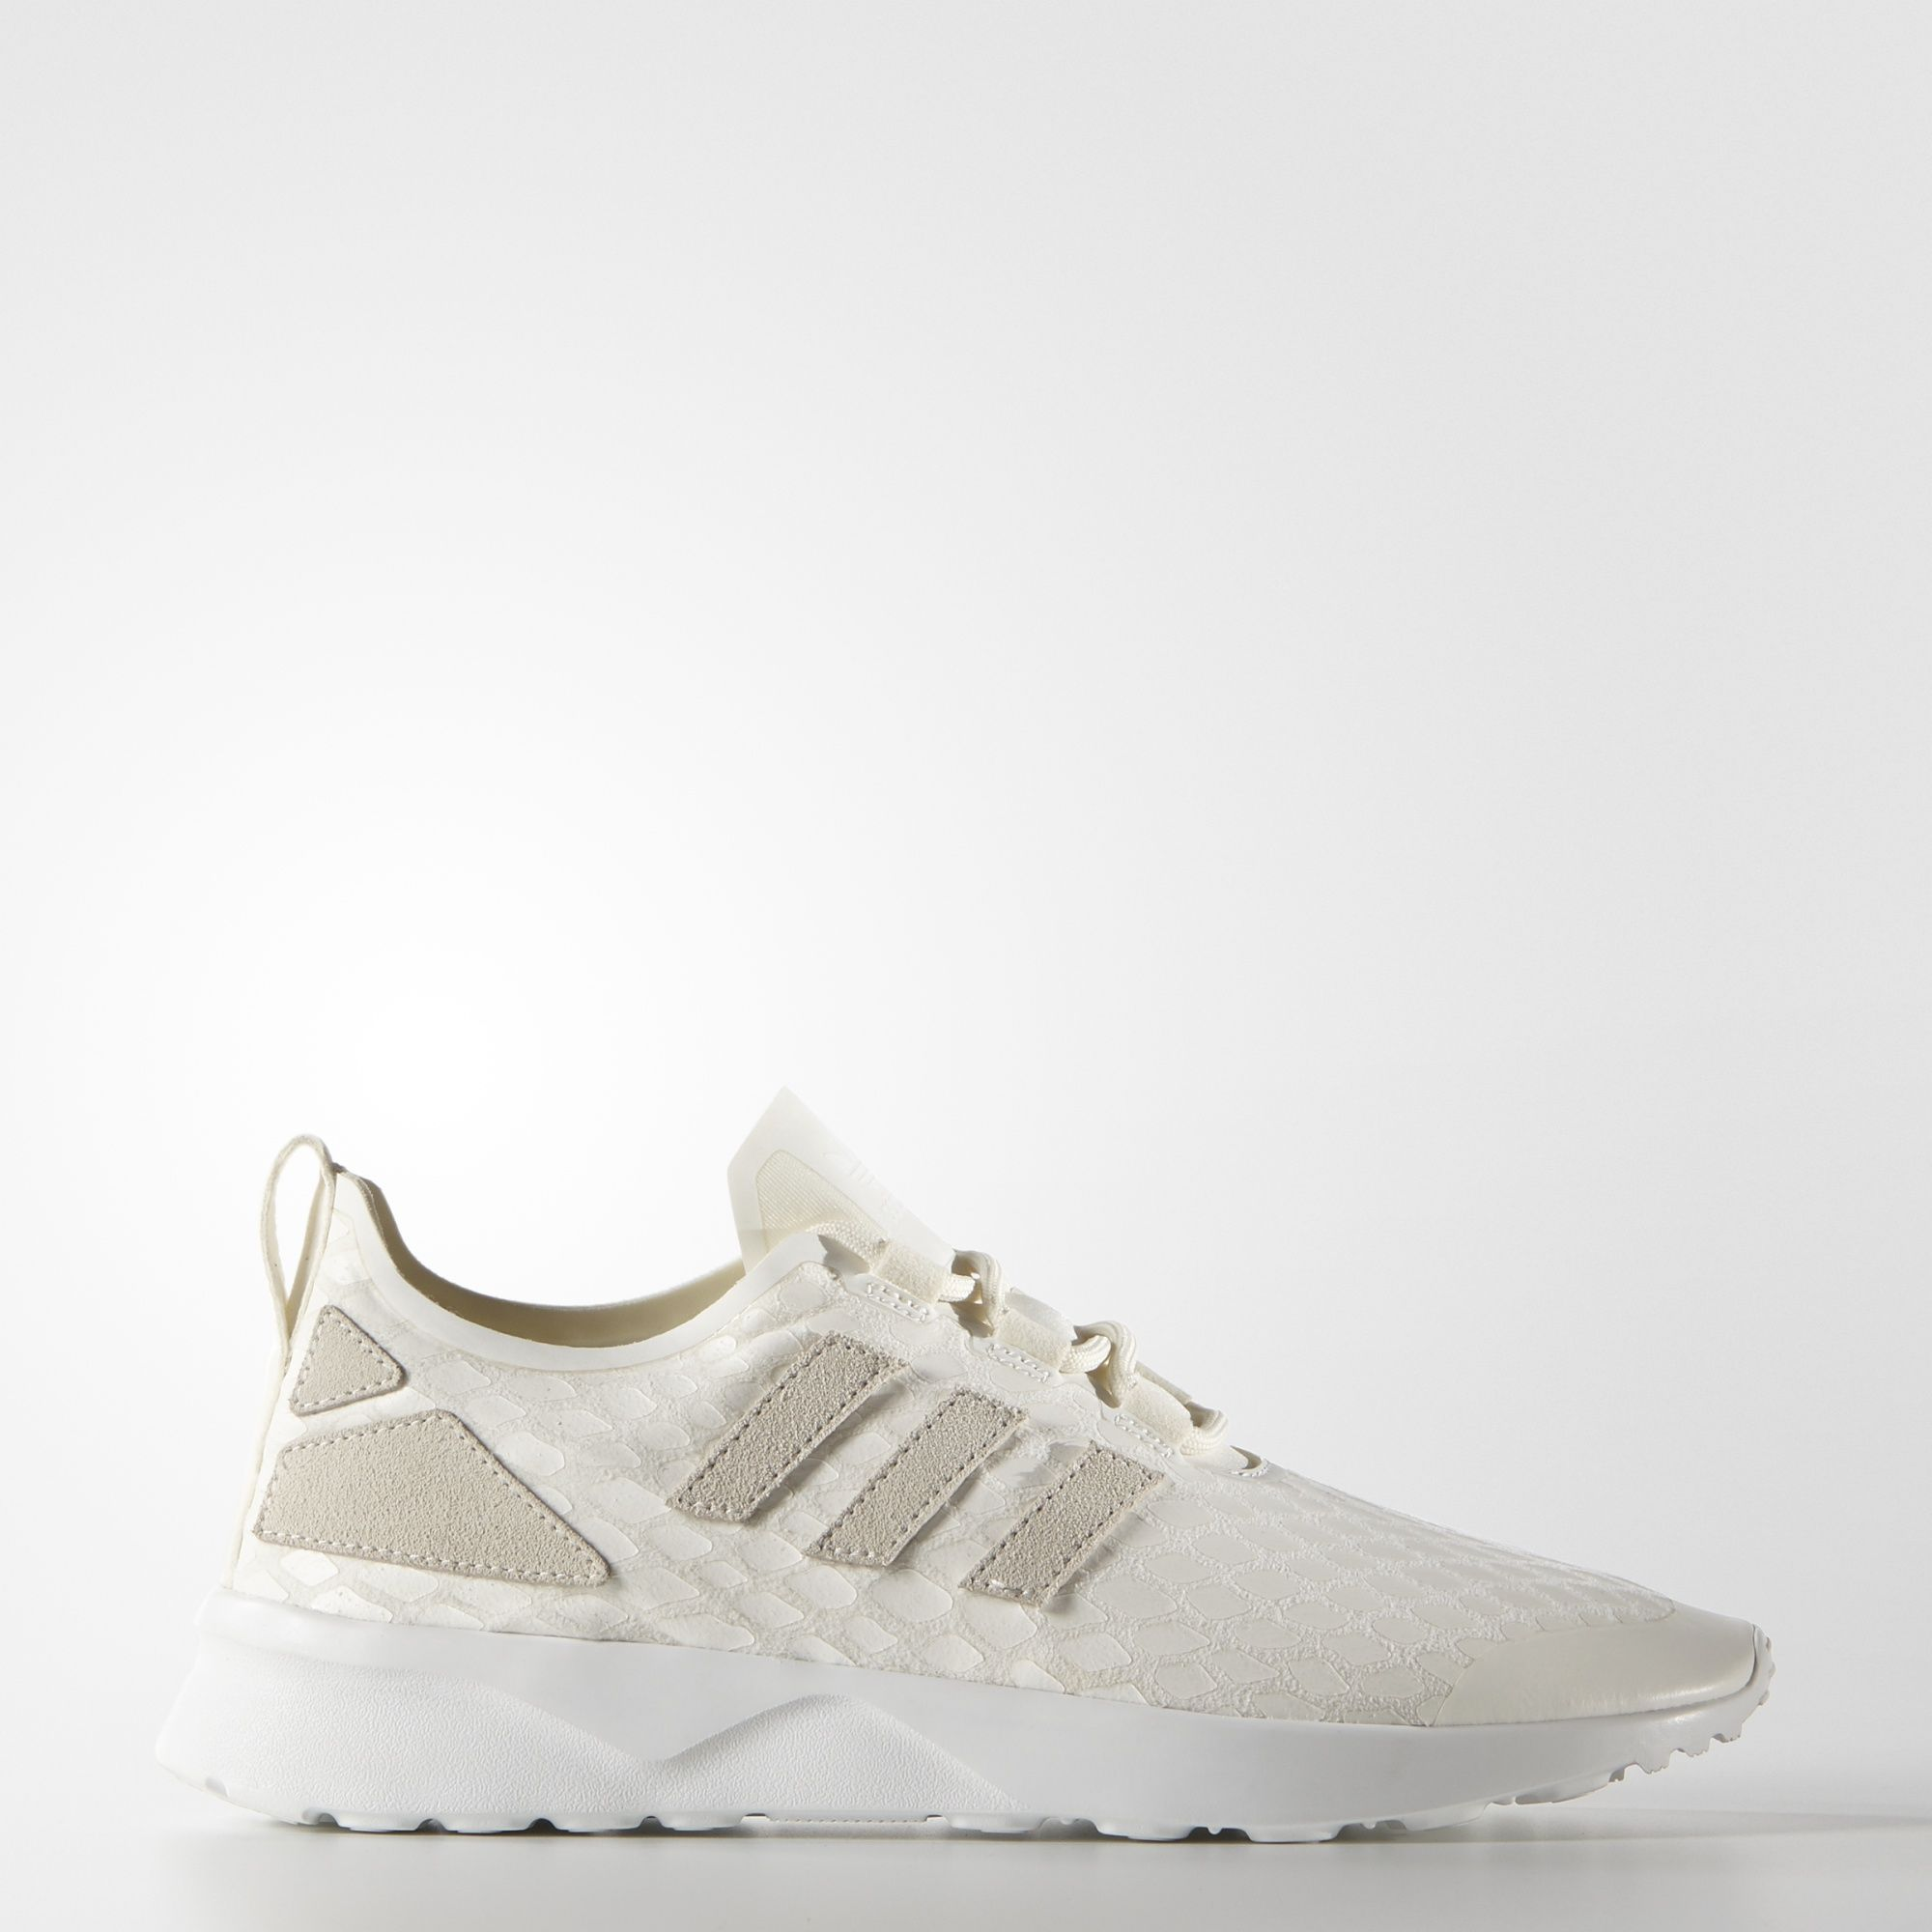 adidas ZX Flux ADV Verve Shoes - White | adidas MLT